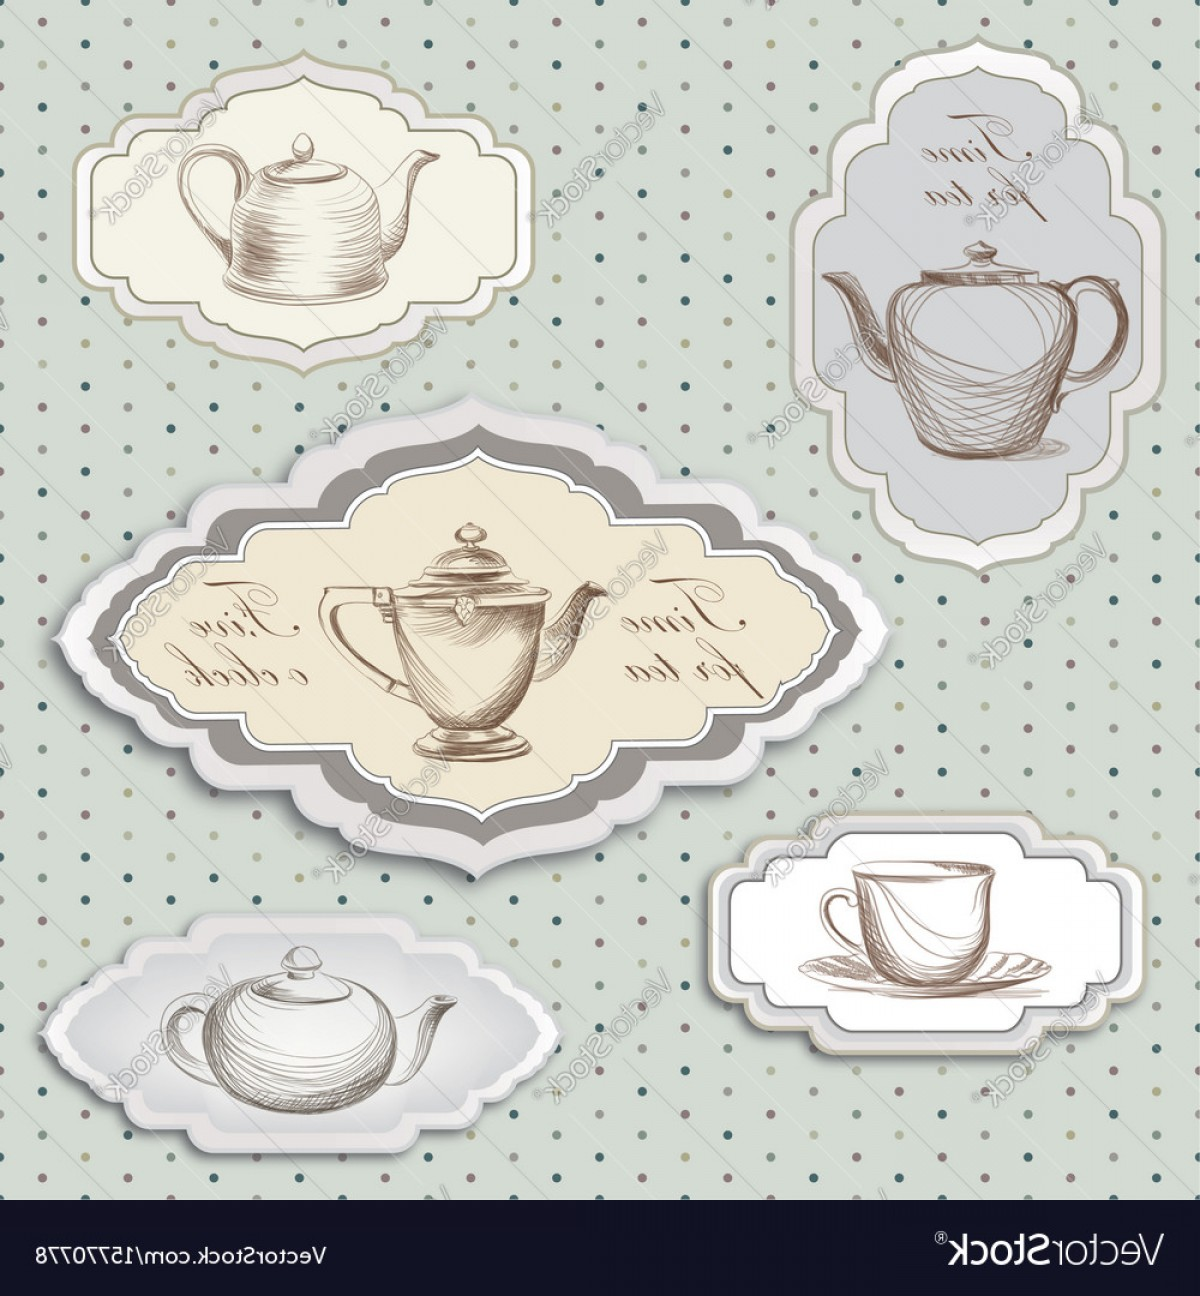 Vintage Tea Cup Vector: Tea Cup Pot Kettle Retro Card Tea Time Vintage Vector